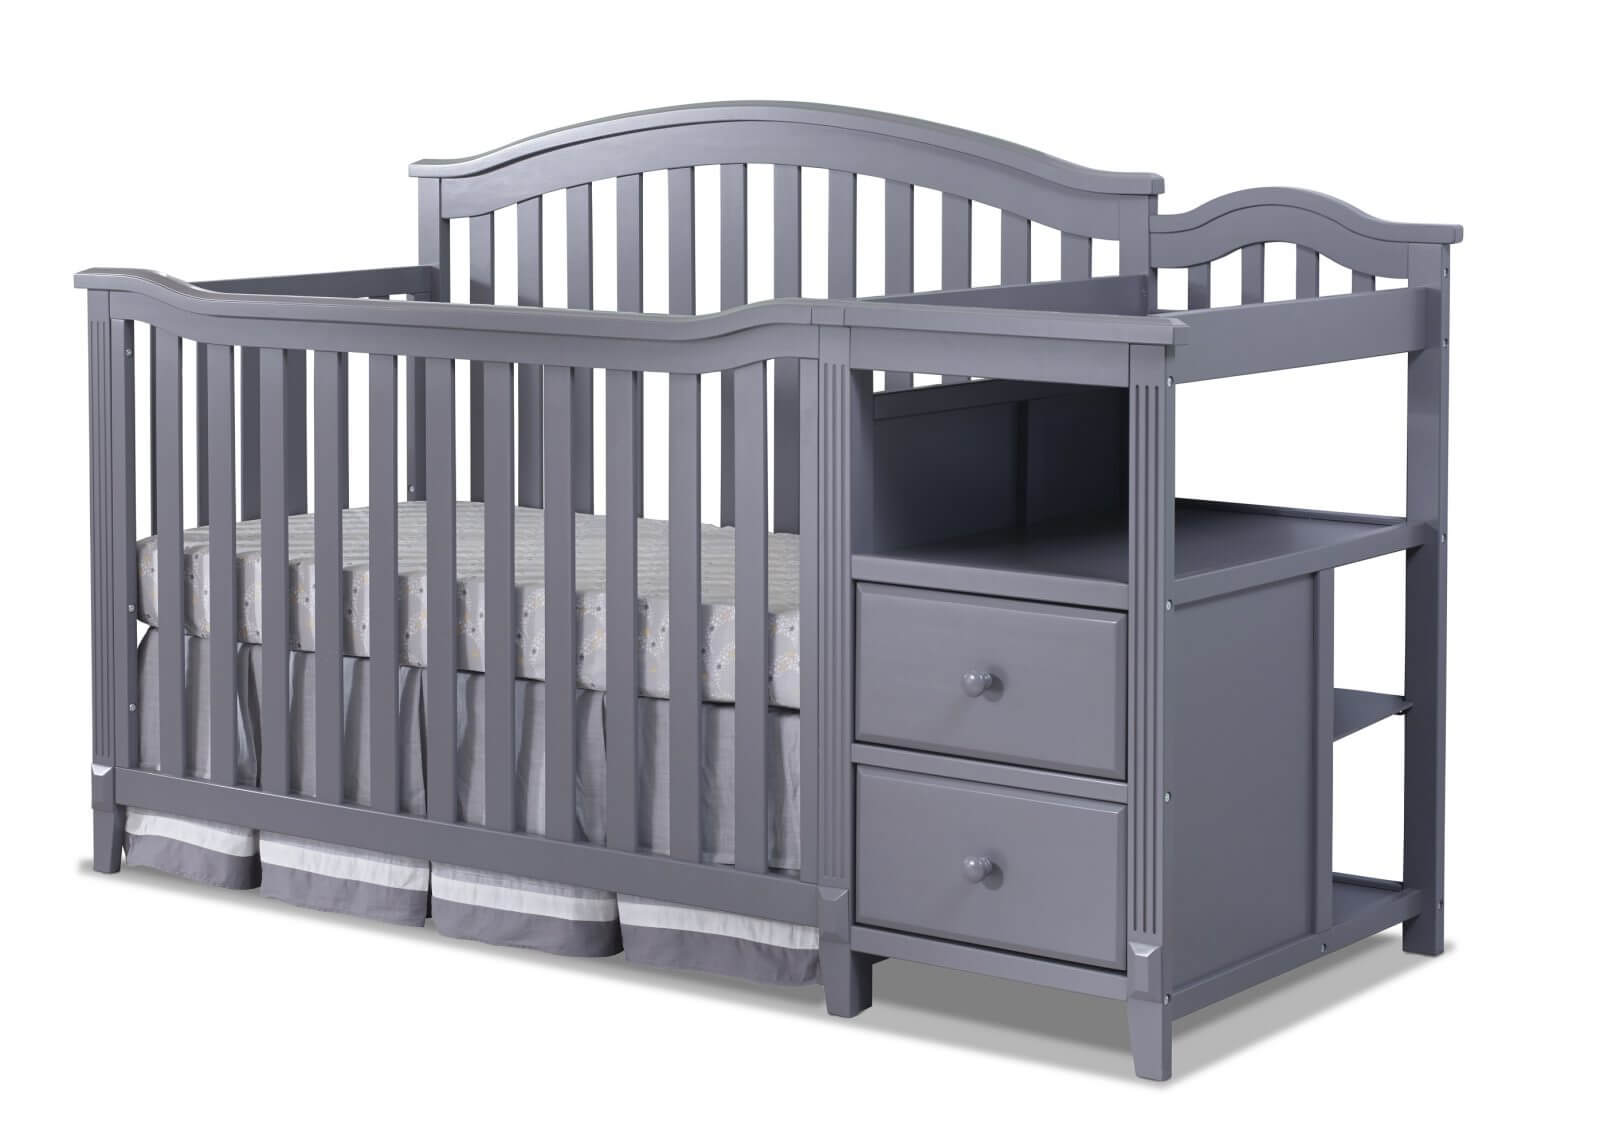 sorelle tuscany 4 in 1 crib instructions